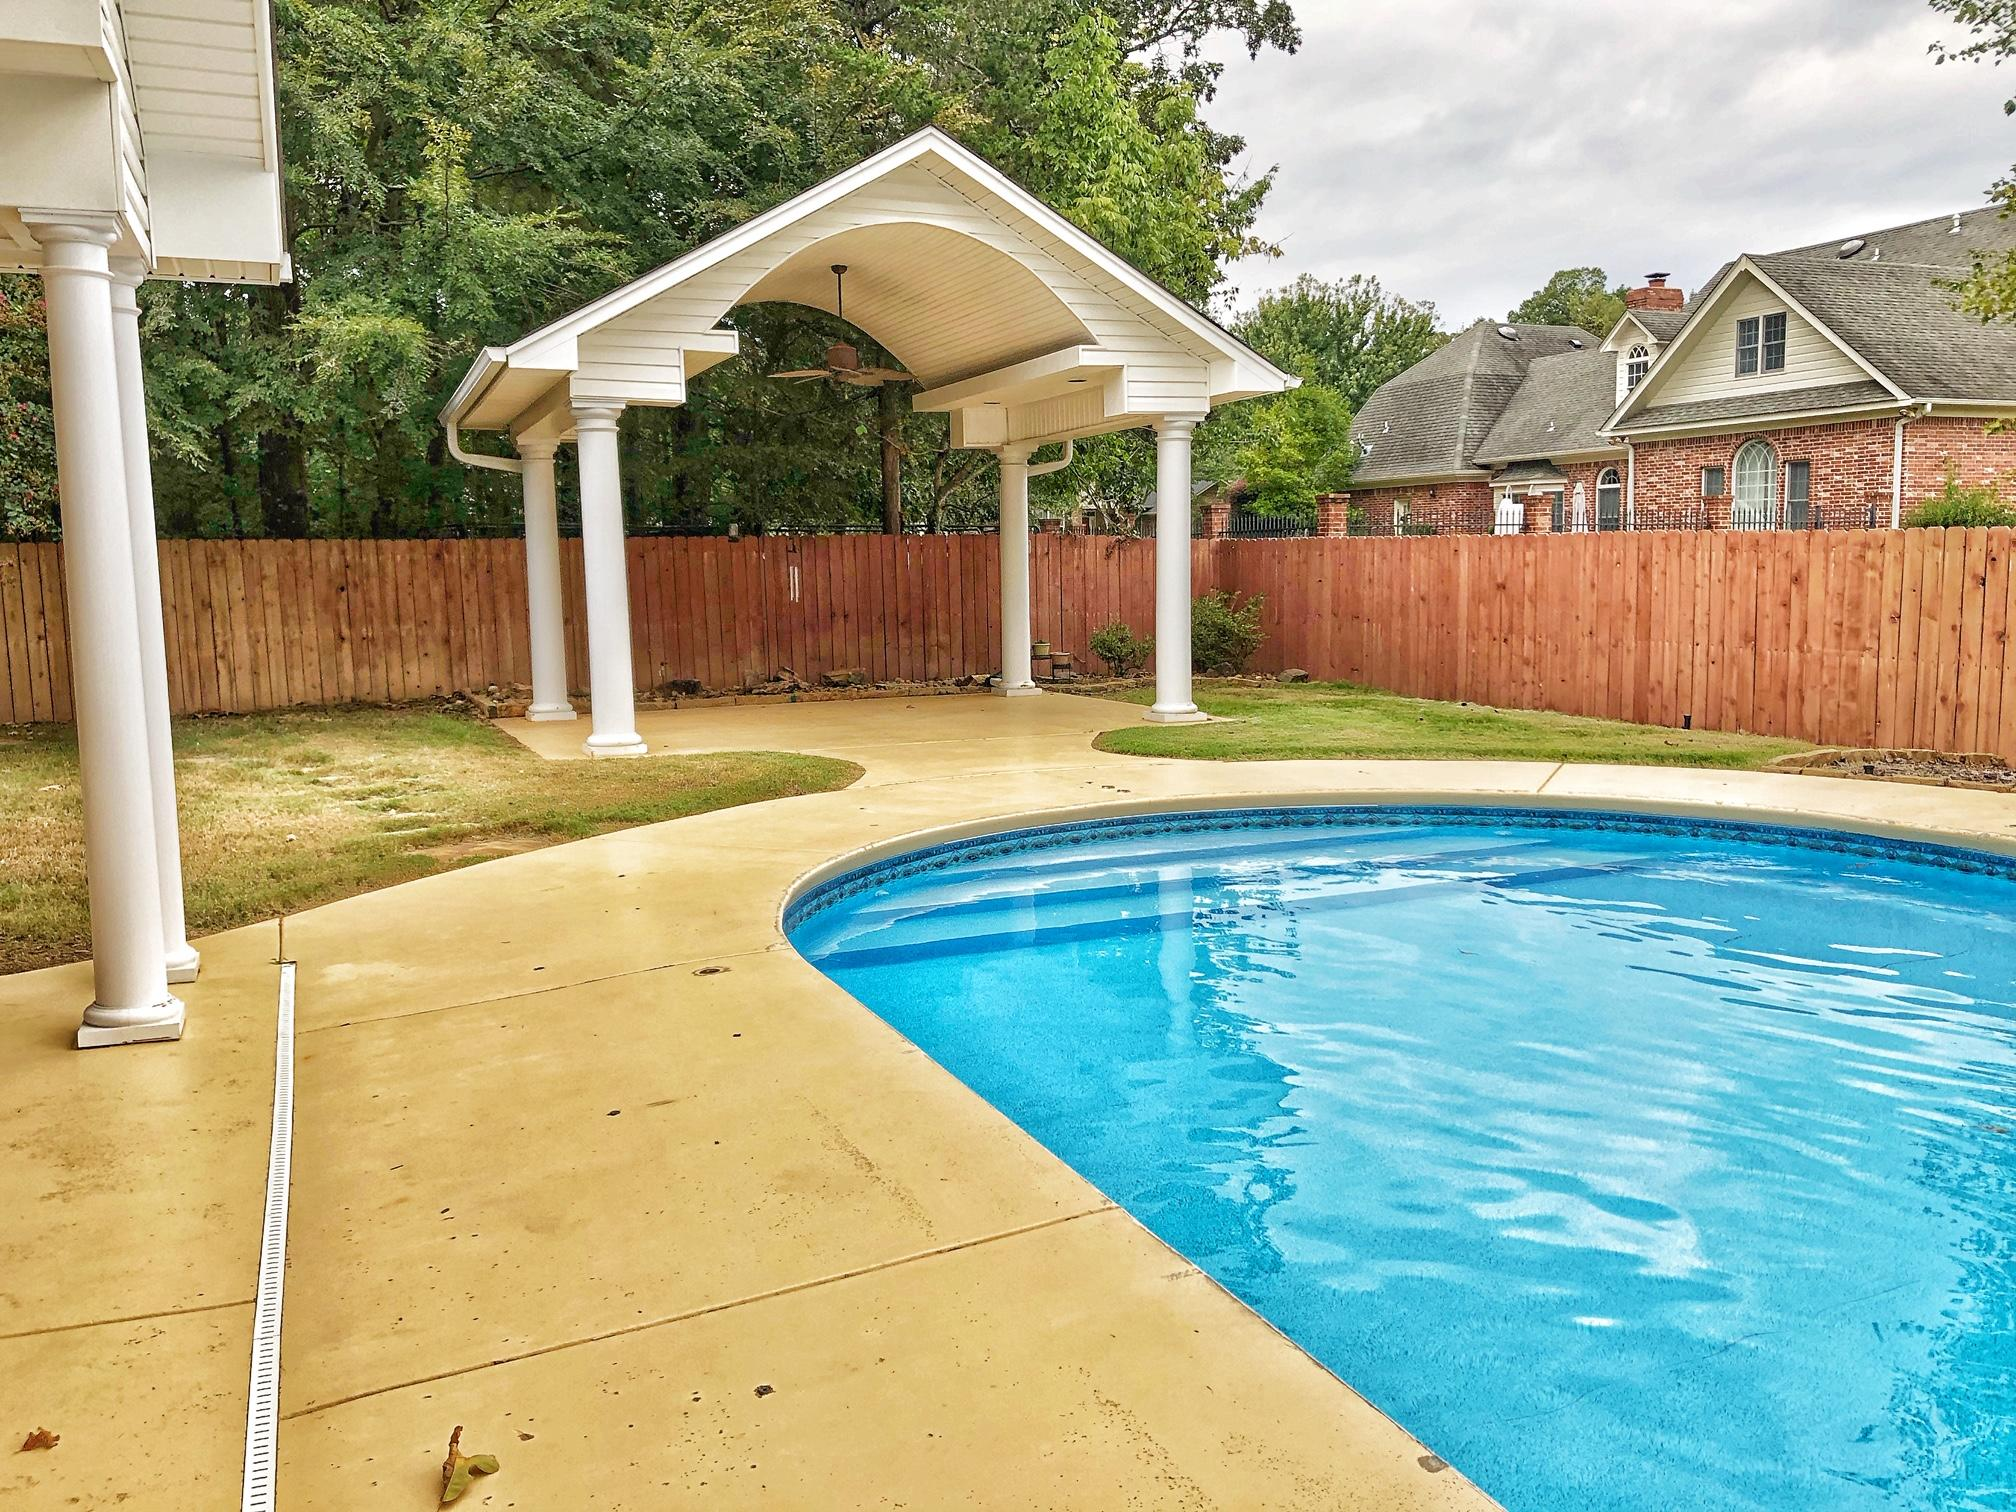 Large photo 29 of home for sale at 2410 8th Street, Russellville, AR